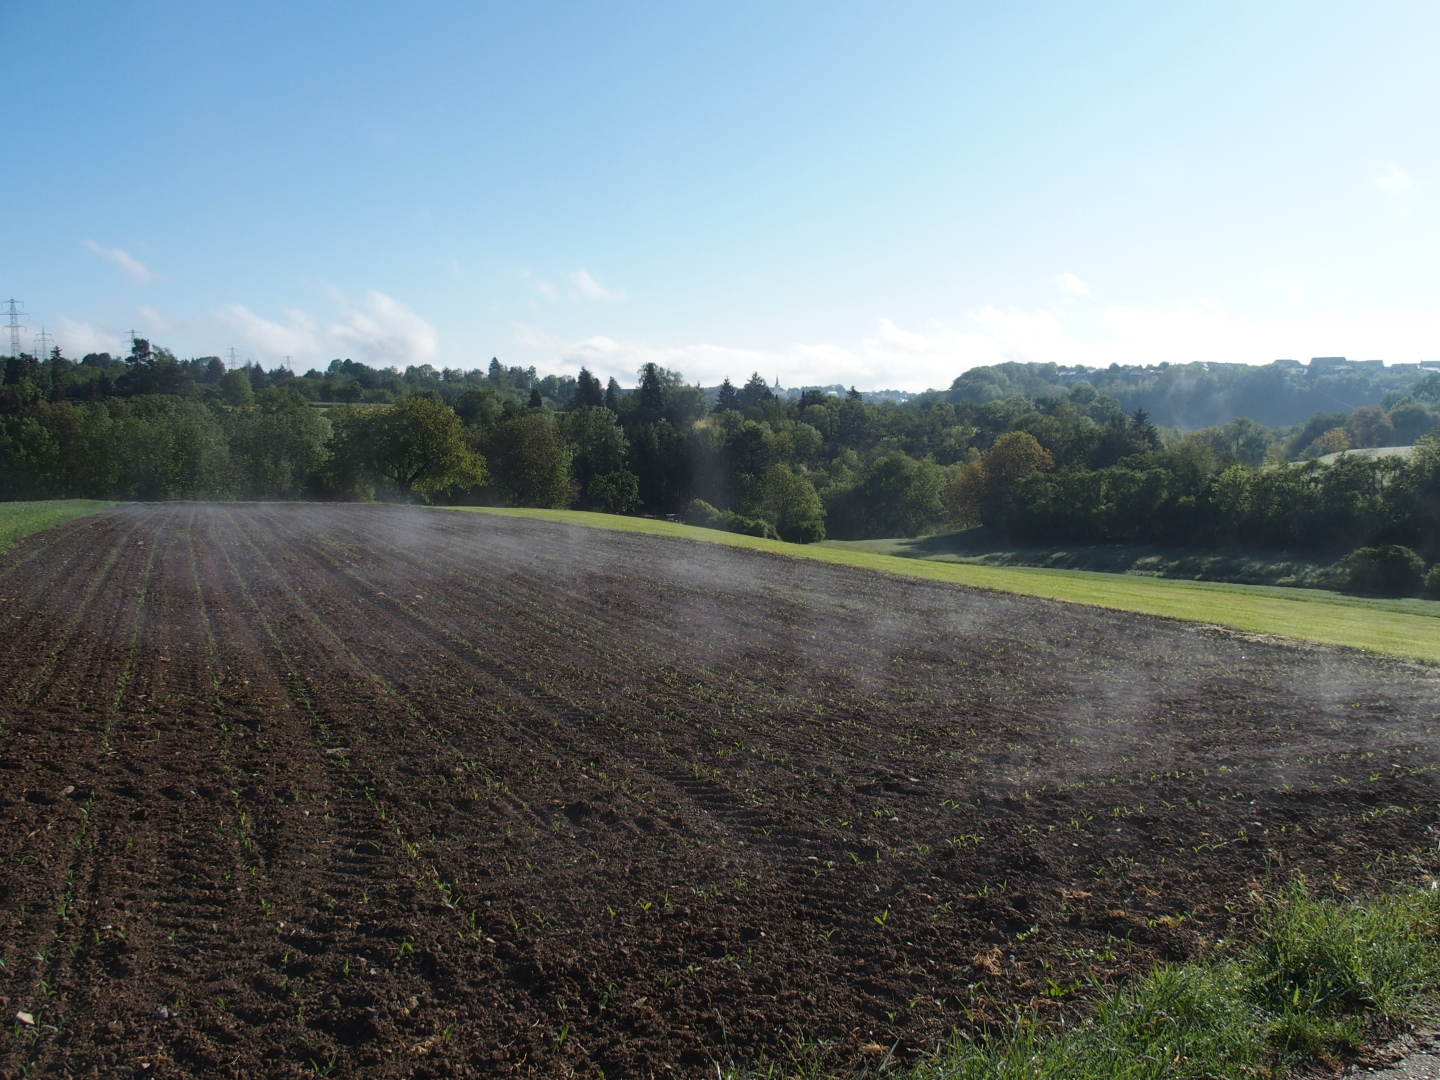 Thermals above a ploughed field (German: Ablösung), made visible by water vapour.